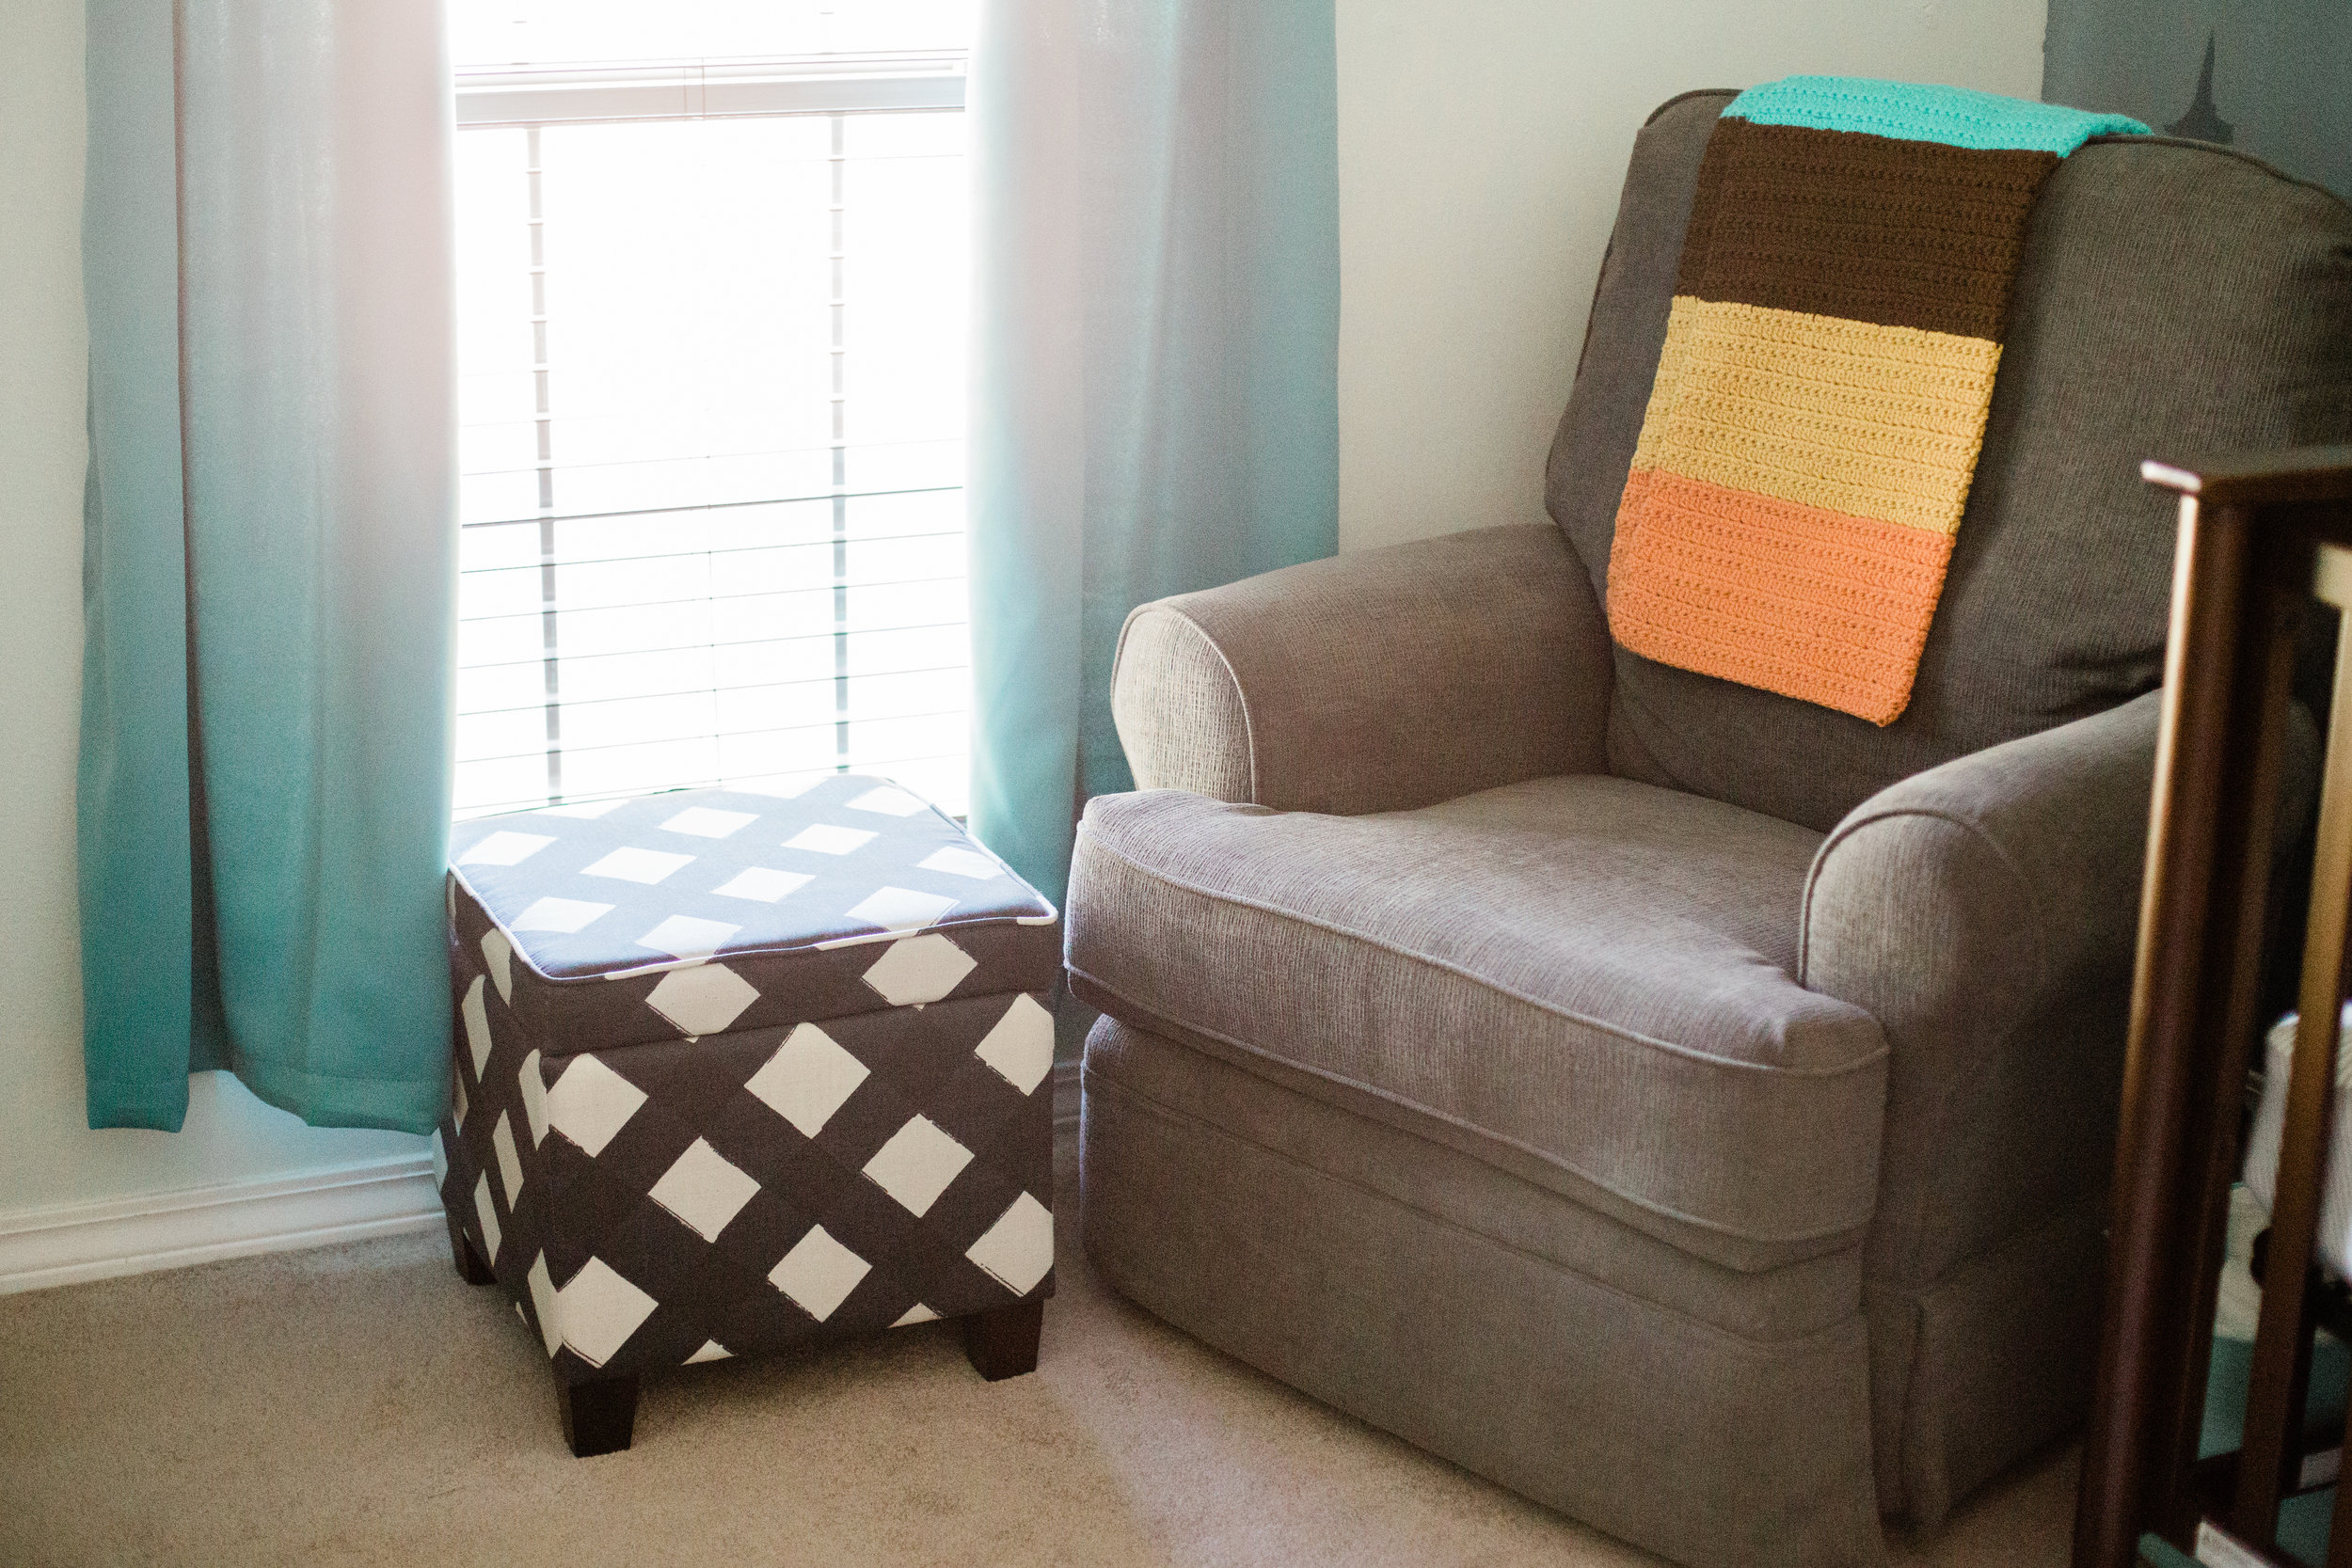 I'm loving this ottoman I got on clearance at Target (I'm using it to store my breast pump and pumping accessories)!